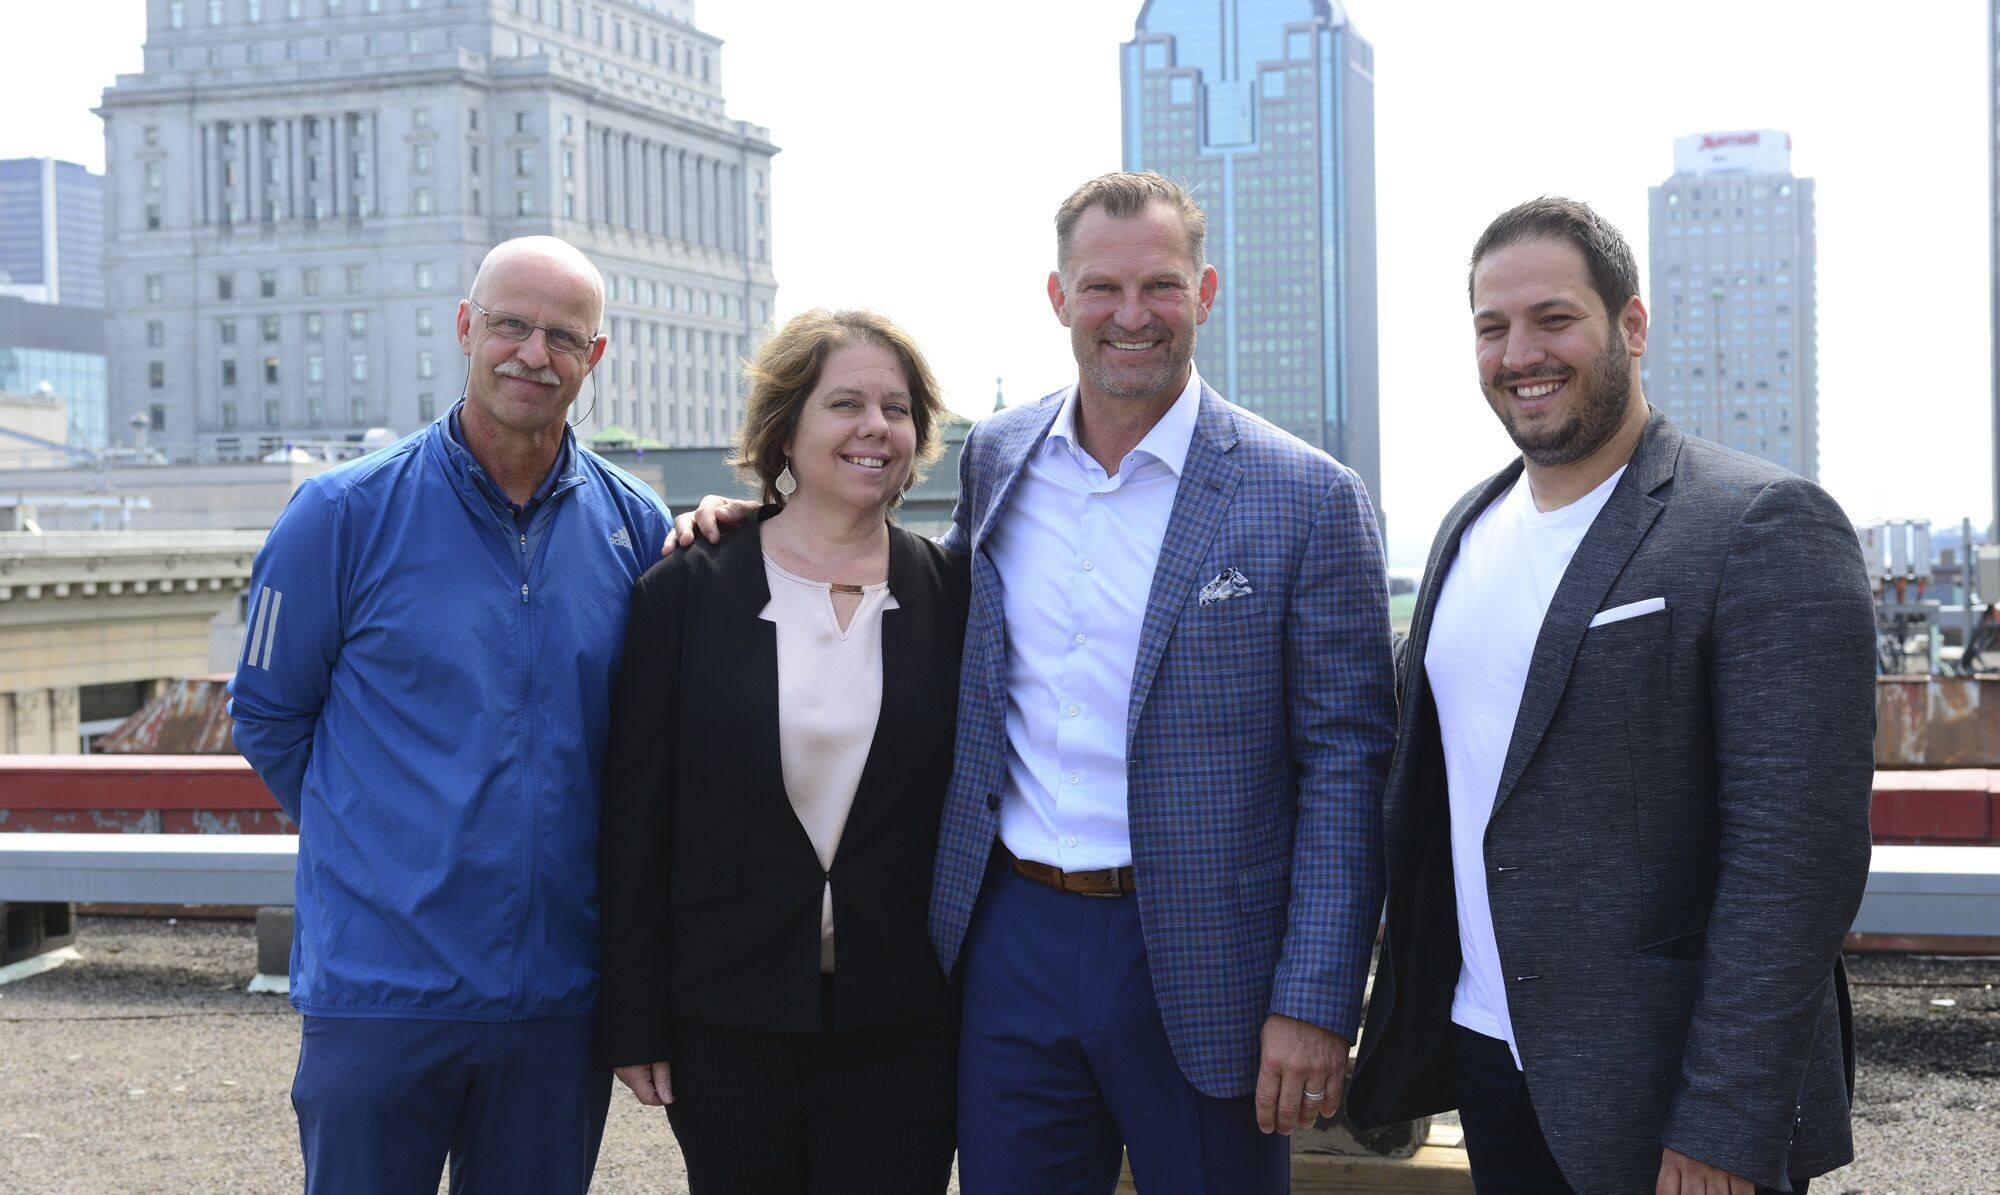 From left to right: Horst Bente (leAD), Carolina Bessega (Stradigi AI), Kirk Muller (Canadiens de Momtréal) and Basil Bouraropoulos (Stradigi AI).